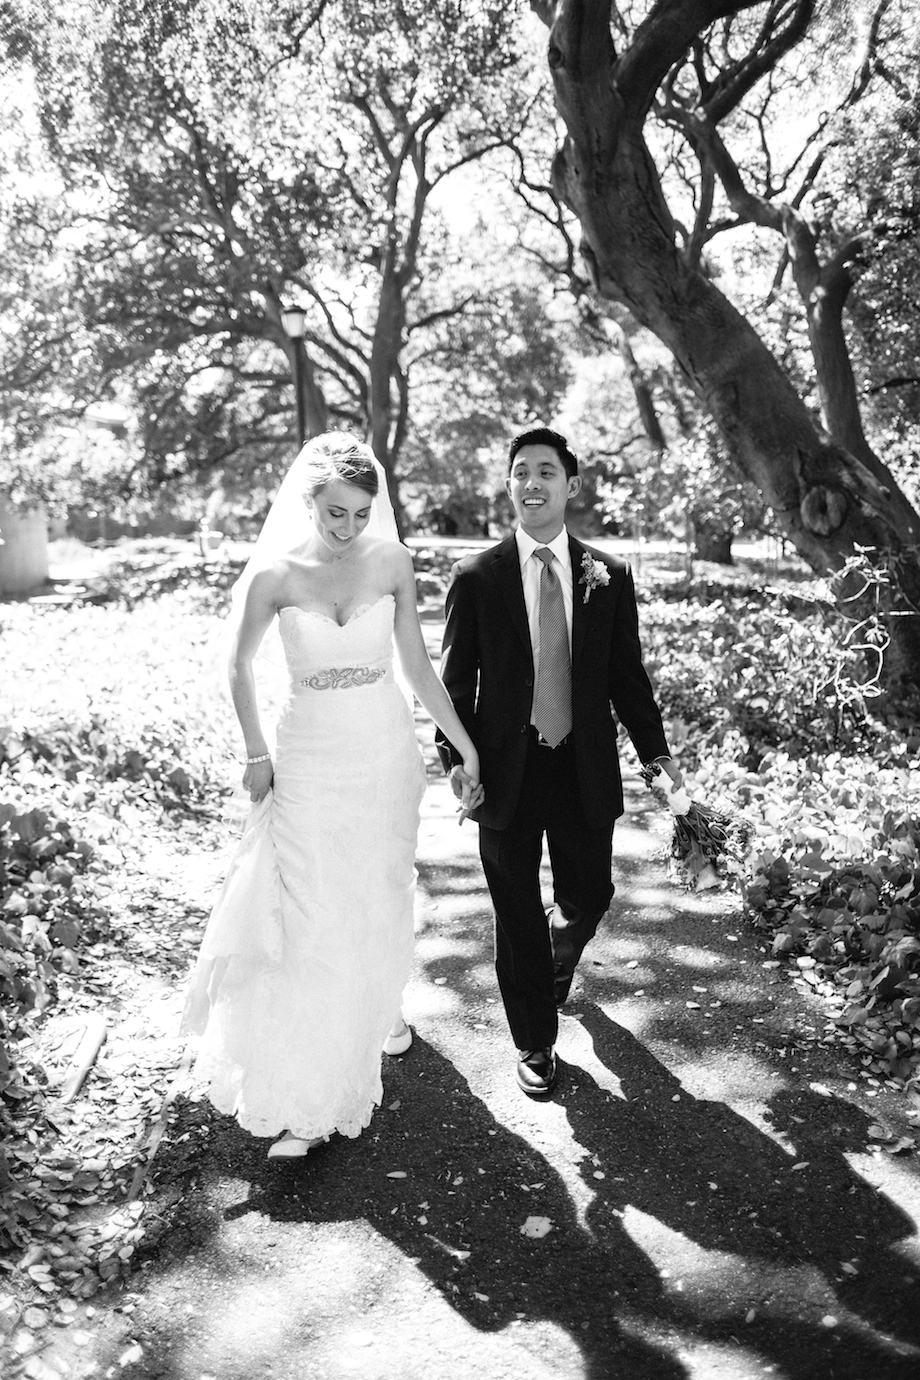 uc berkeley wedding photography gem photo